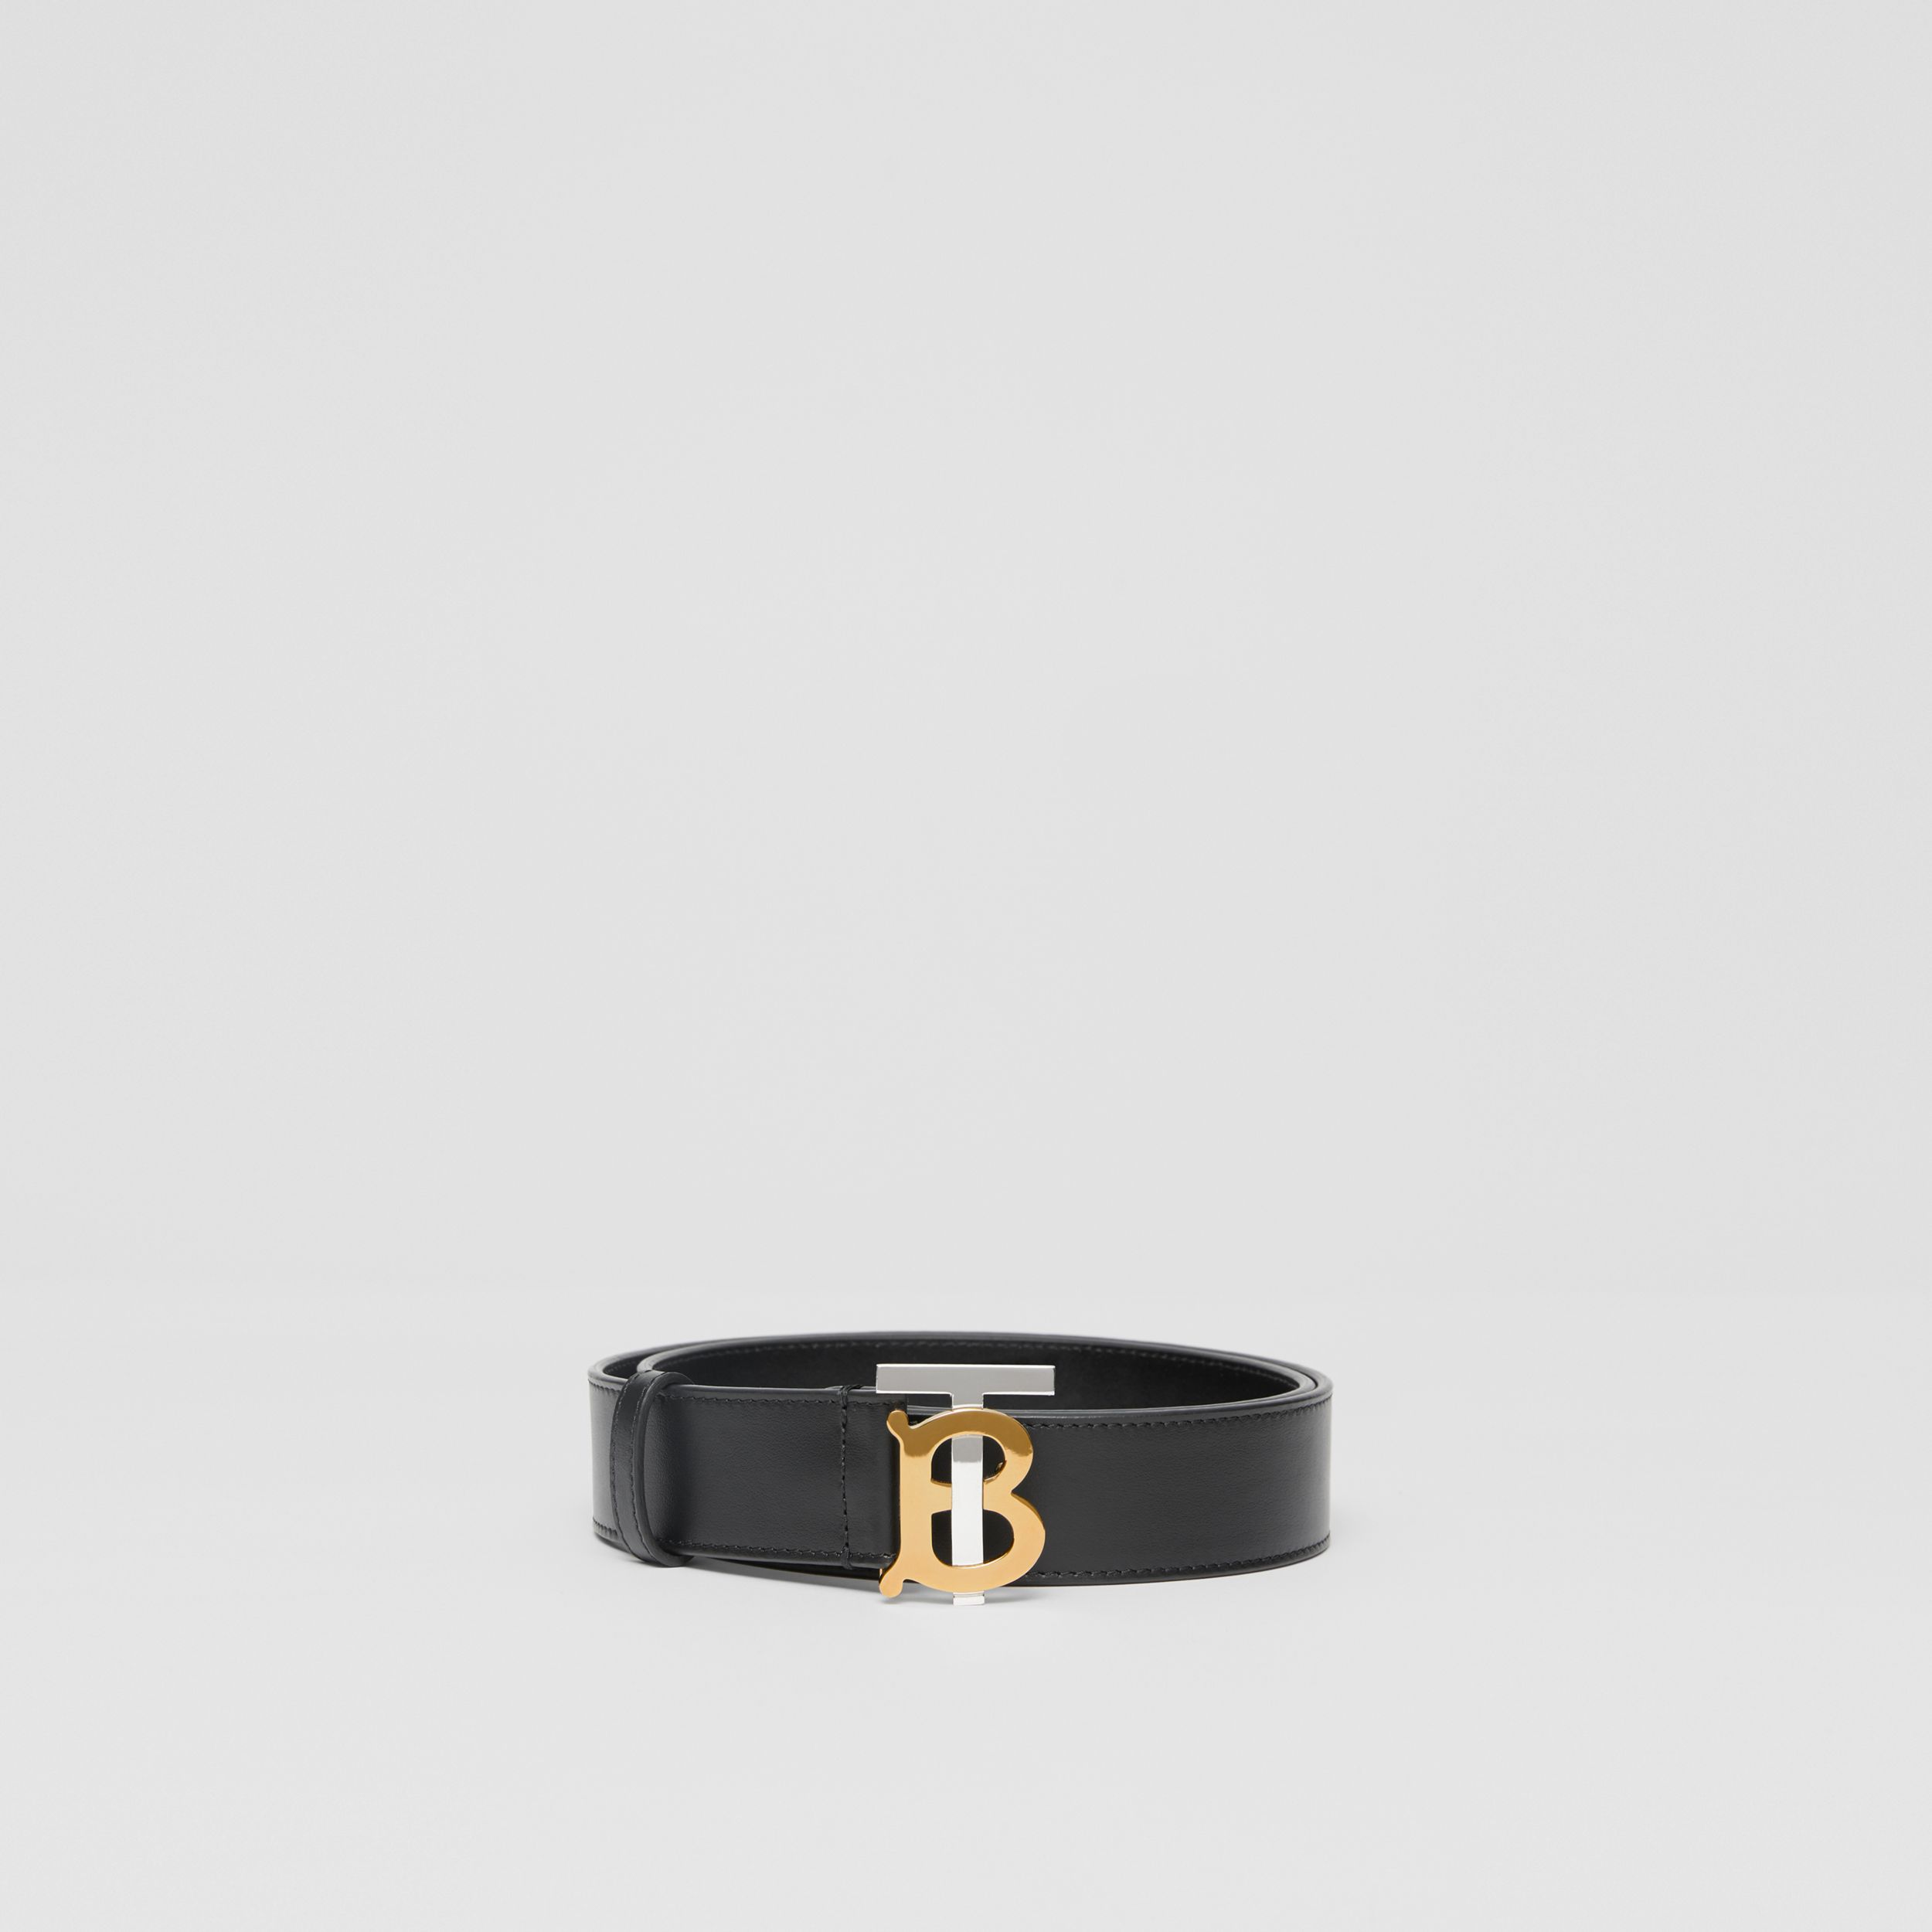 Two-tone Monogram Motif Leather Belt in Black - Men | Burberry - 4